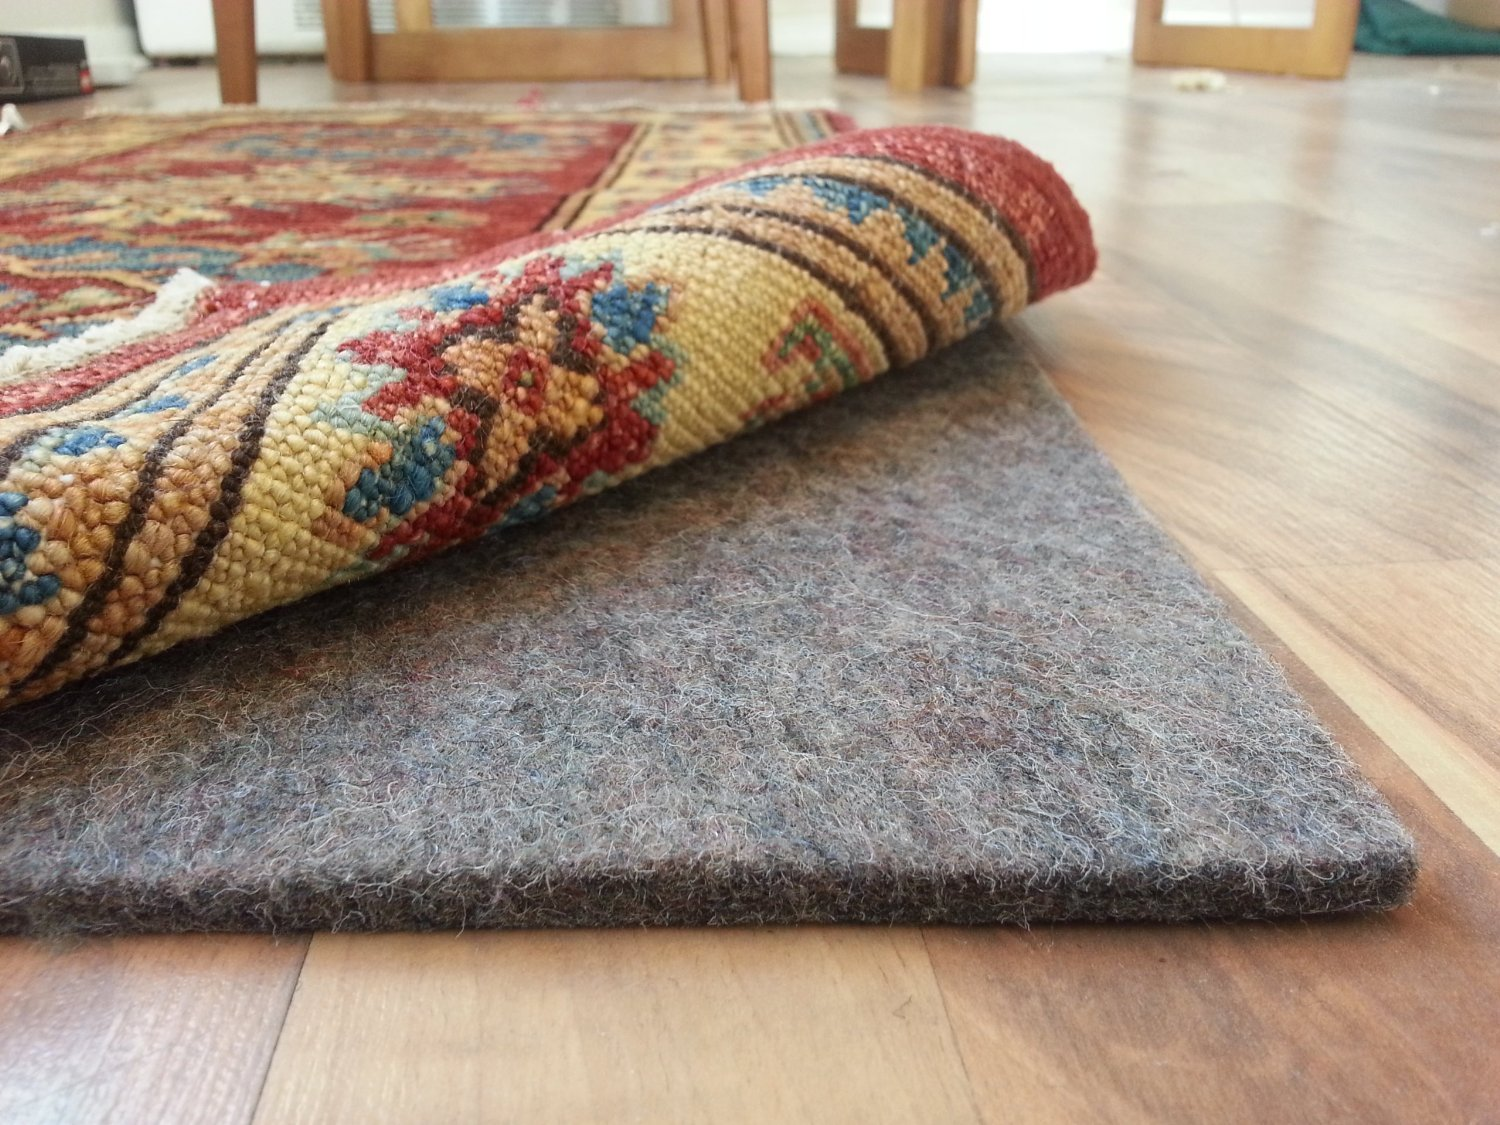 Carpet rug amazon.com: rug pad central 8u0027 x 10u0027 100% felt rug pad, extra thick- EYXIGHE